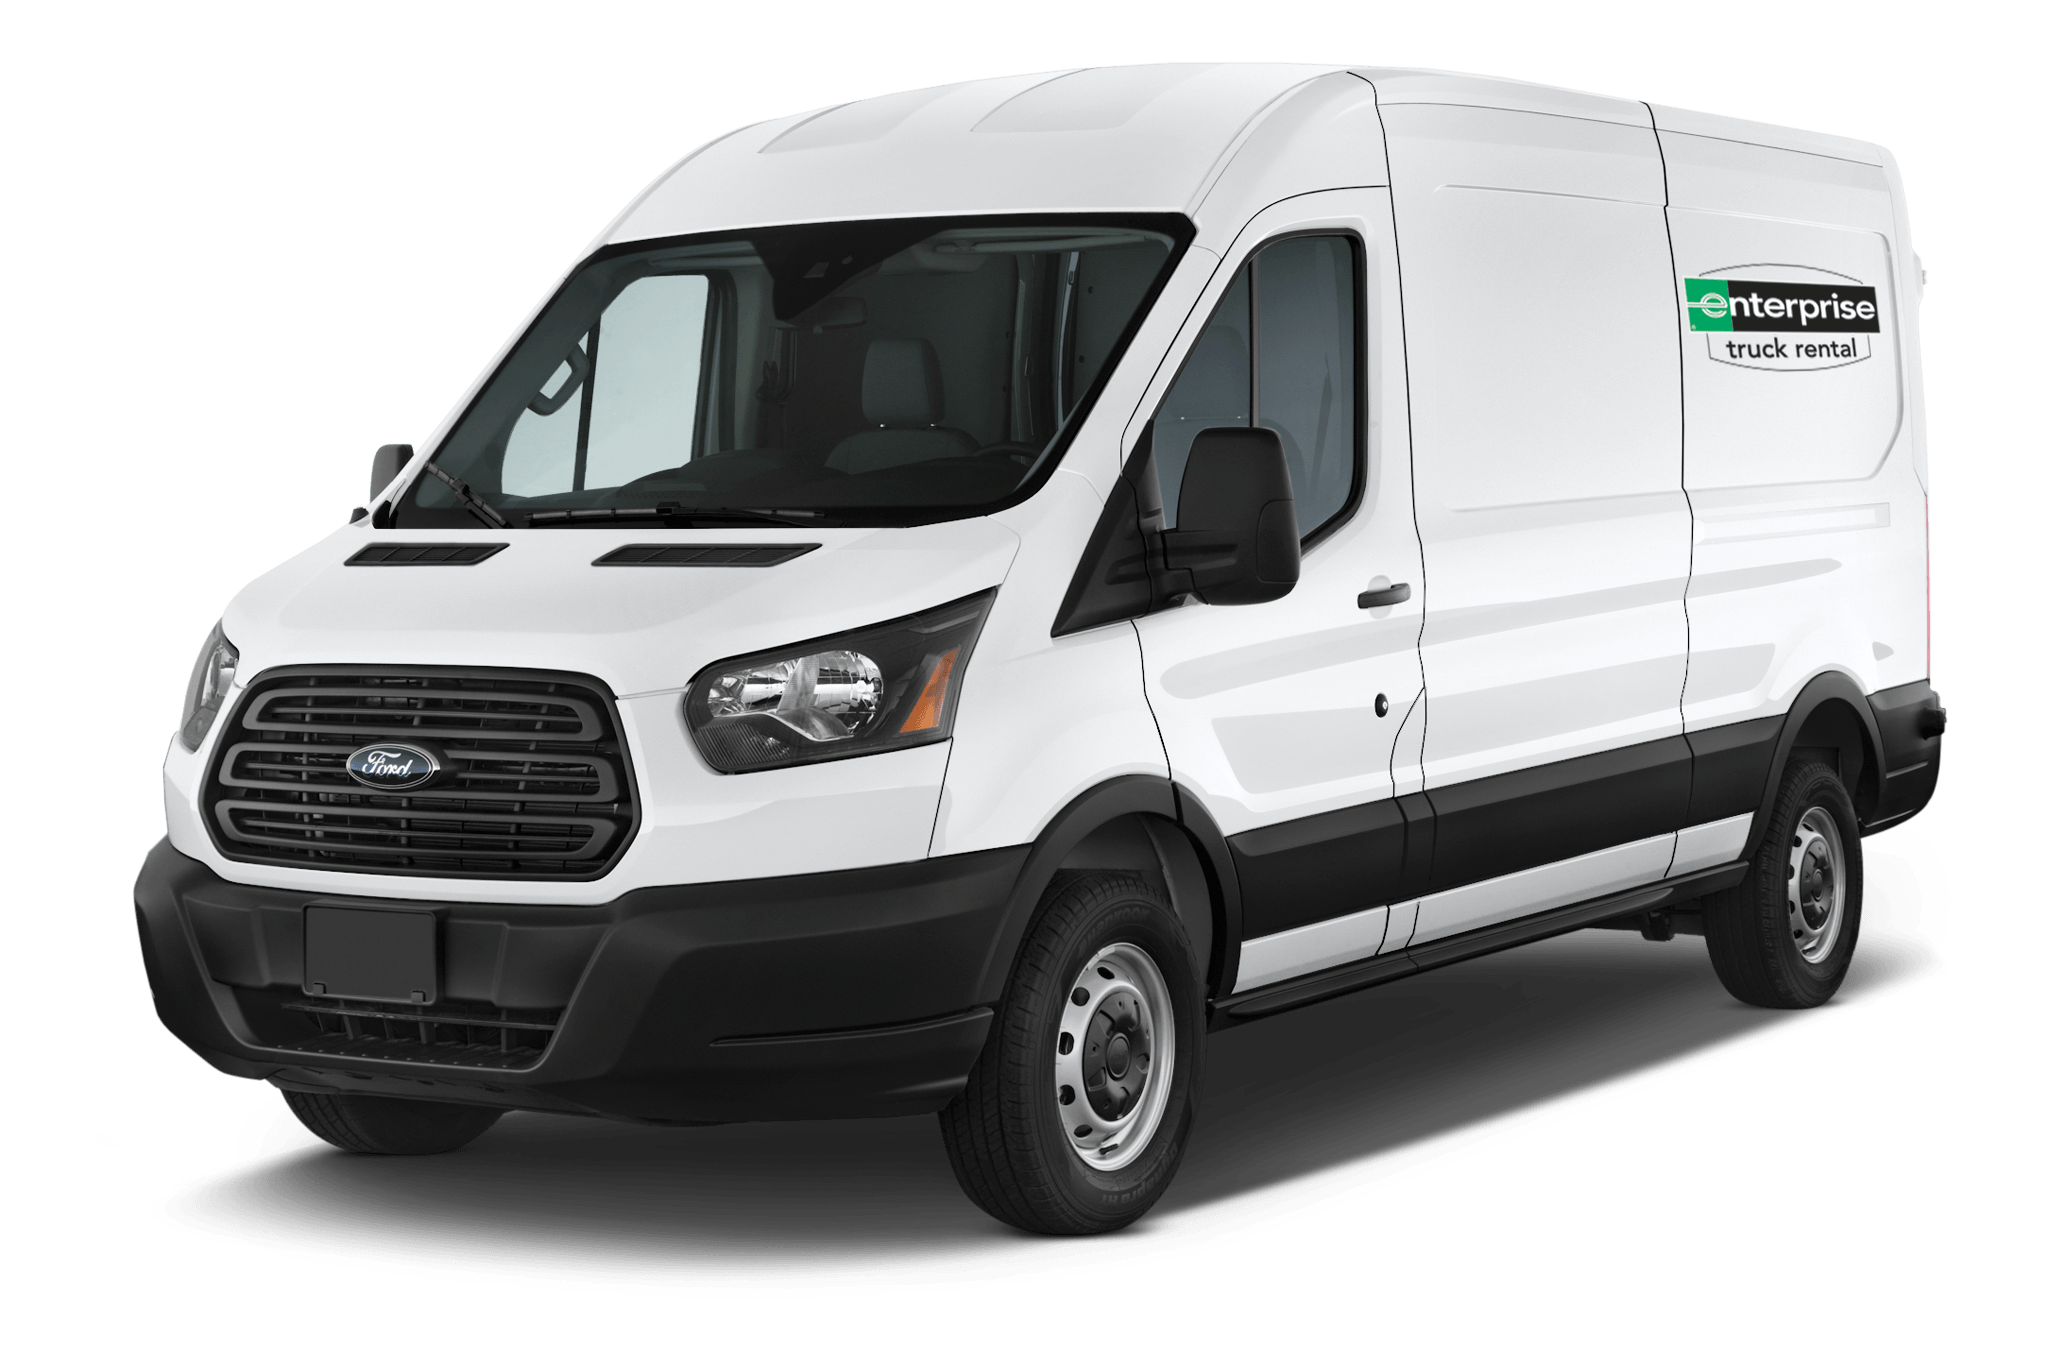 Enterprise Truck Rental image 4